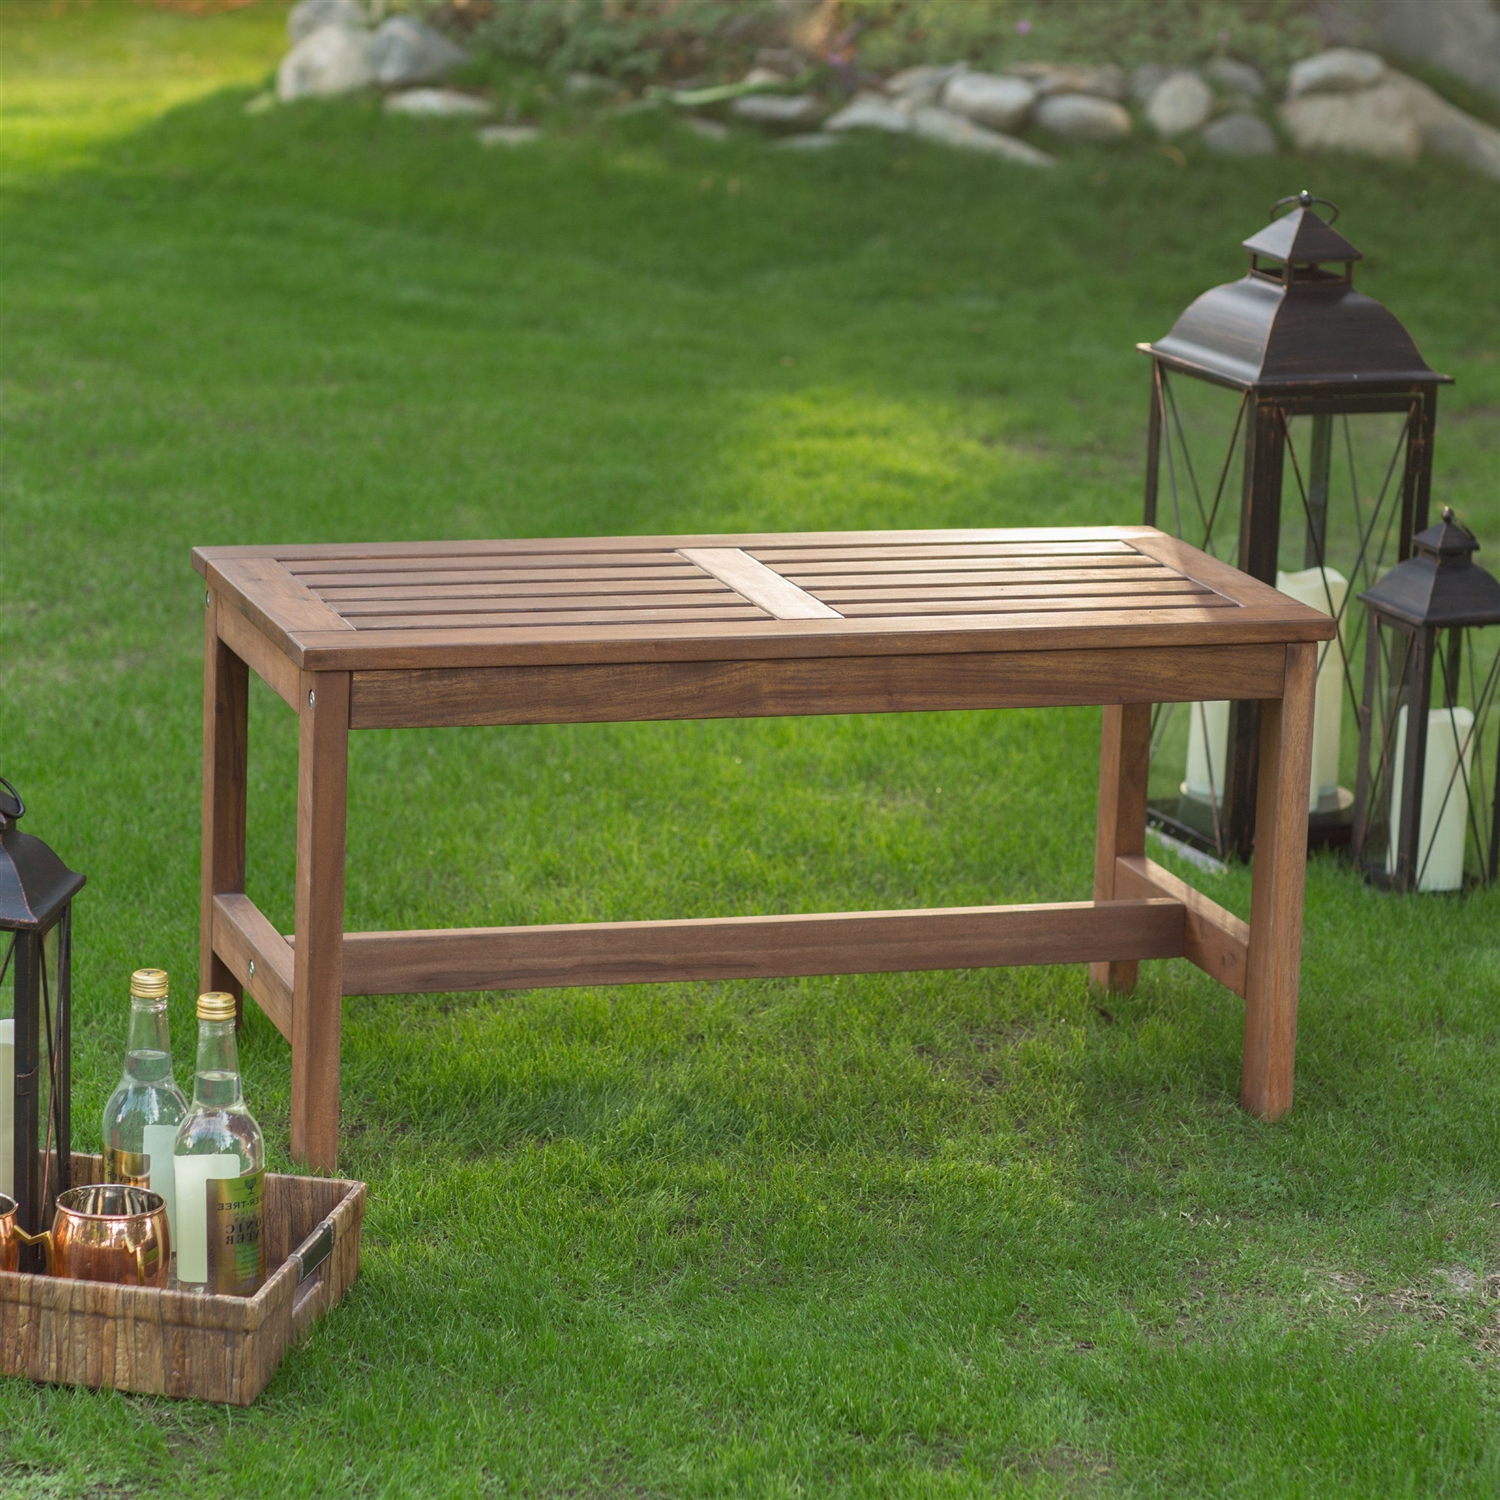 Brilliant 3 Ft Outdoor Backless Garden Bench In Dark Brown Wood Finish Dailytribune Chair Design For Home Dailytribuneorg